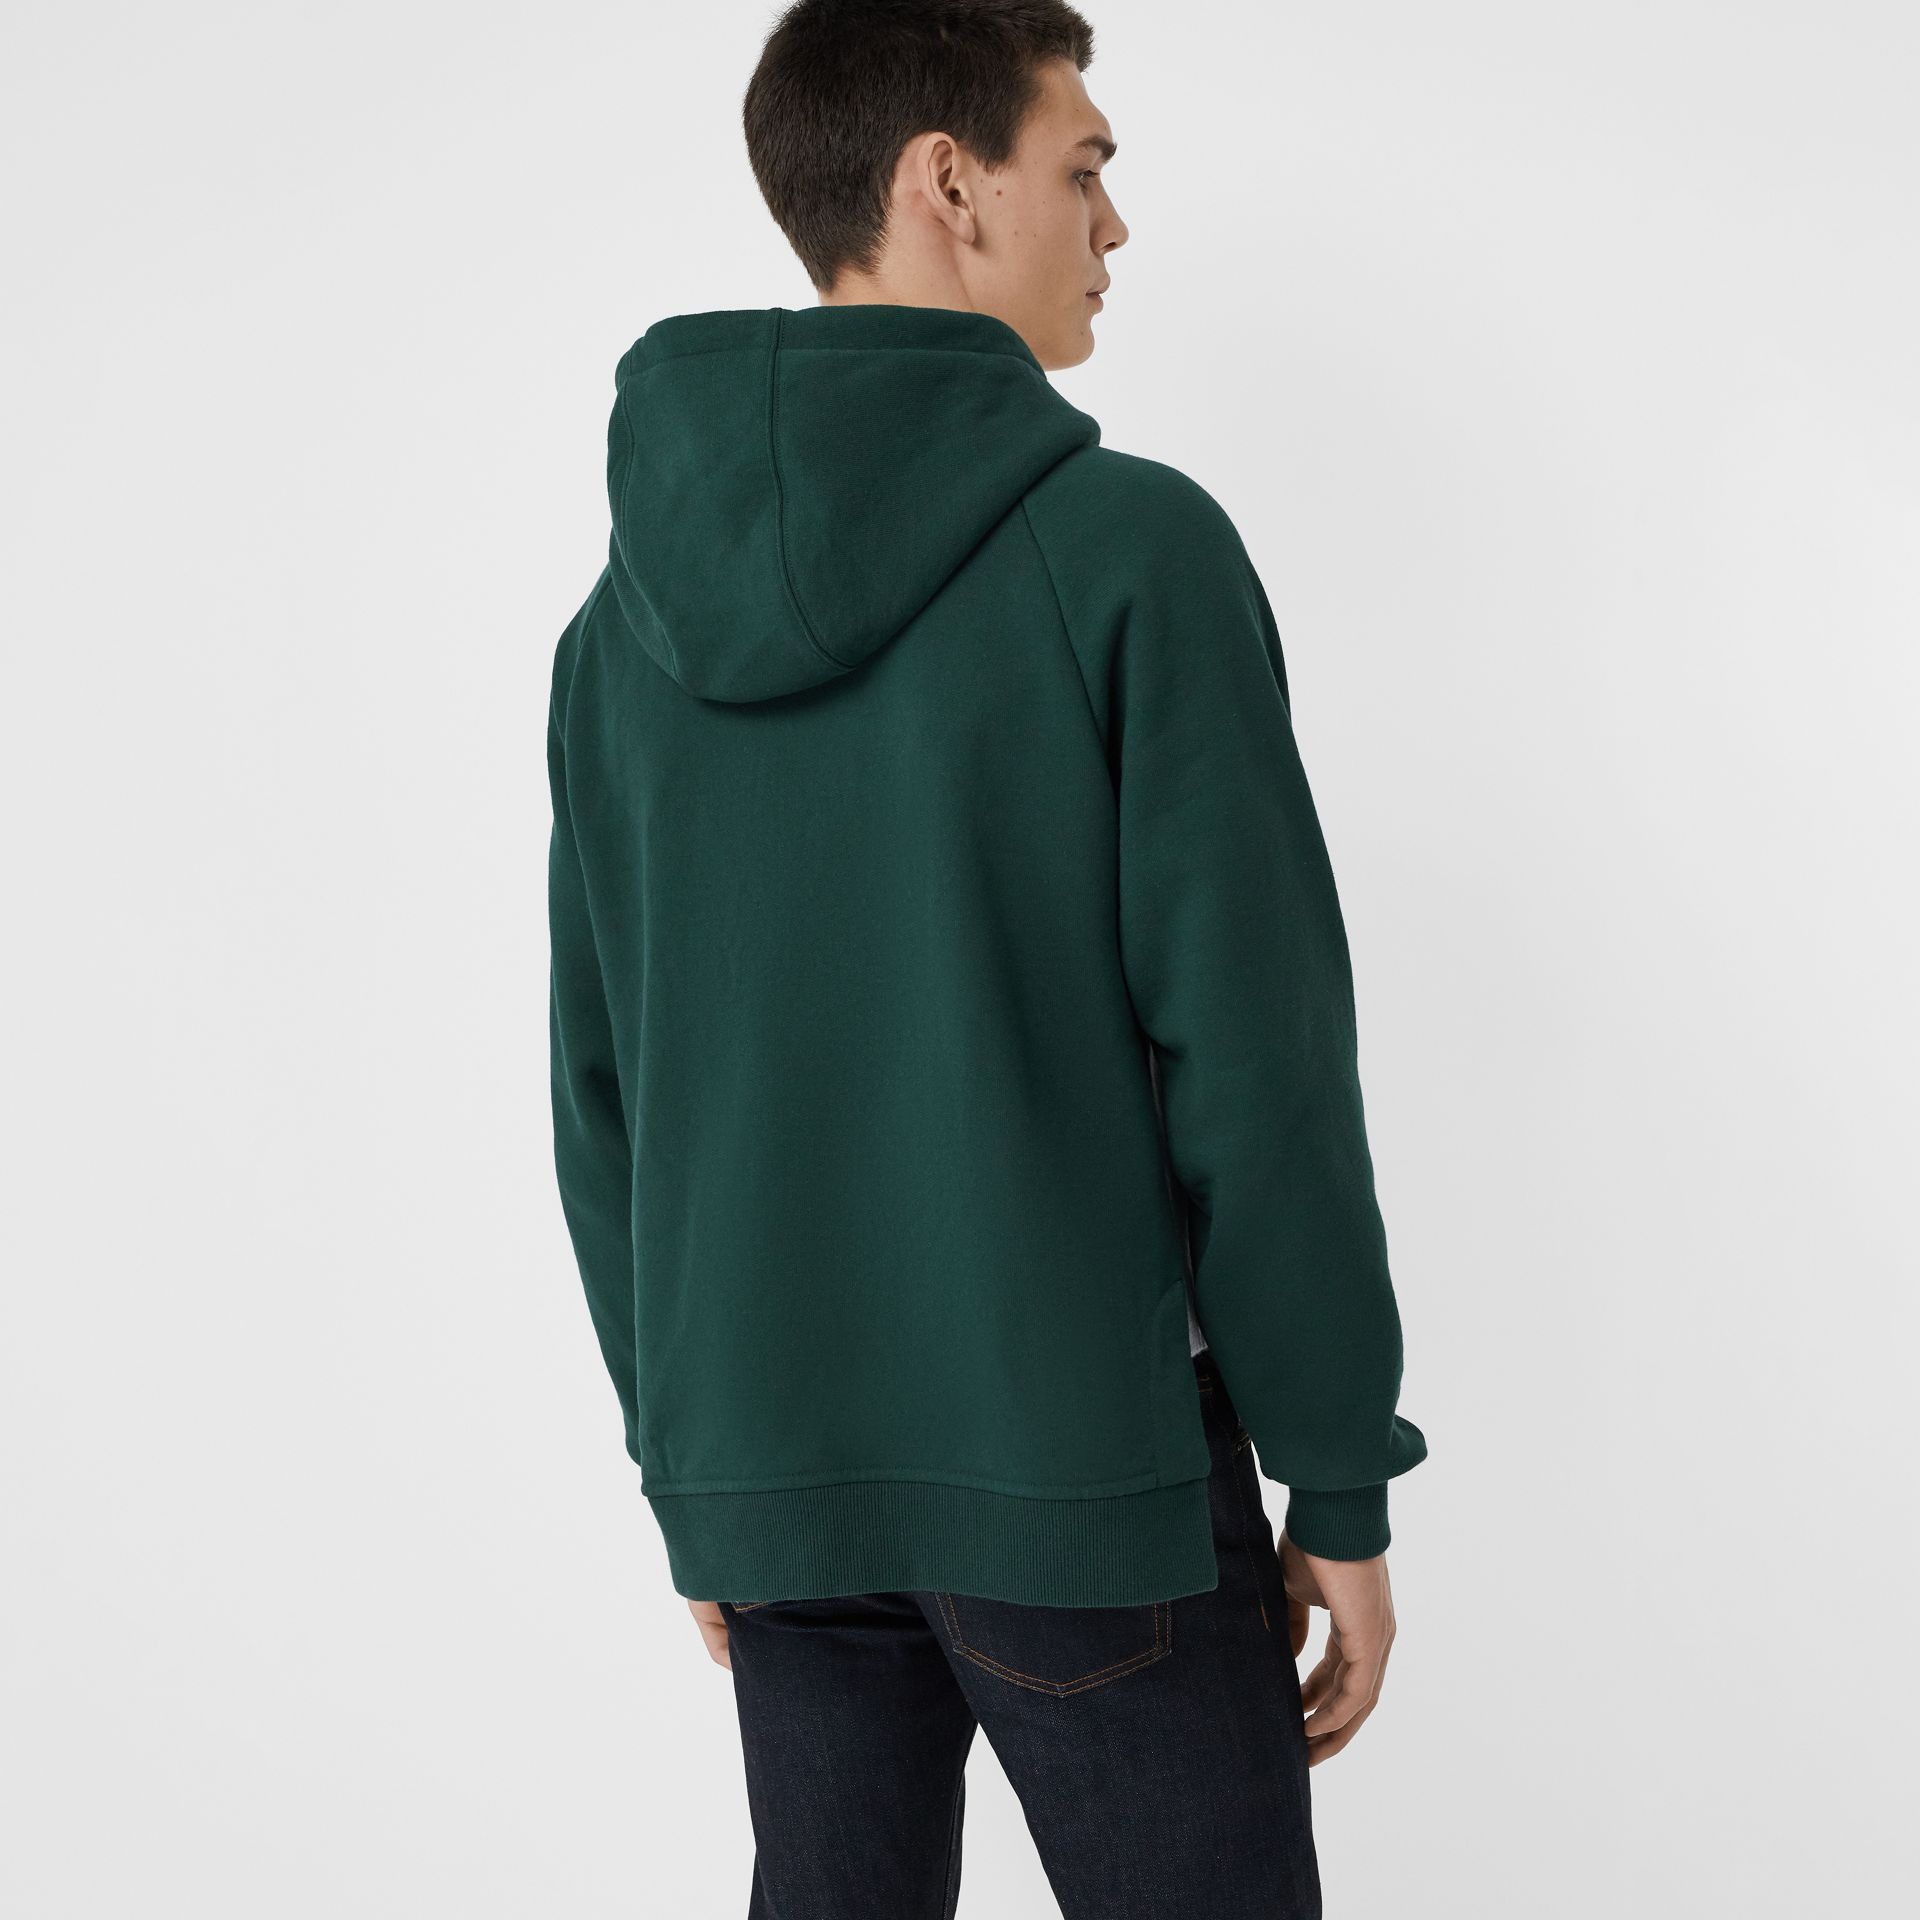 House Music Intarsia Jersey Hoodie in Forest Green - Men | Burberry Singapore - gallery image 2